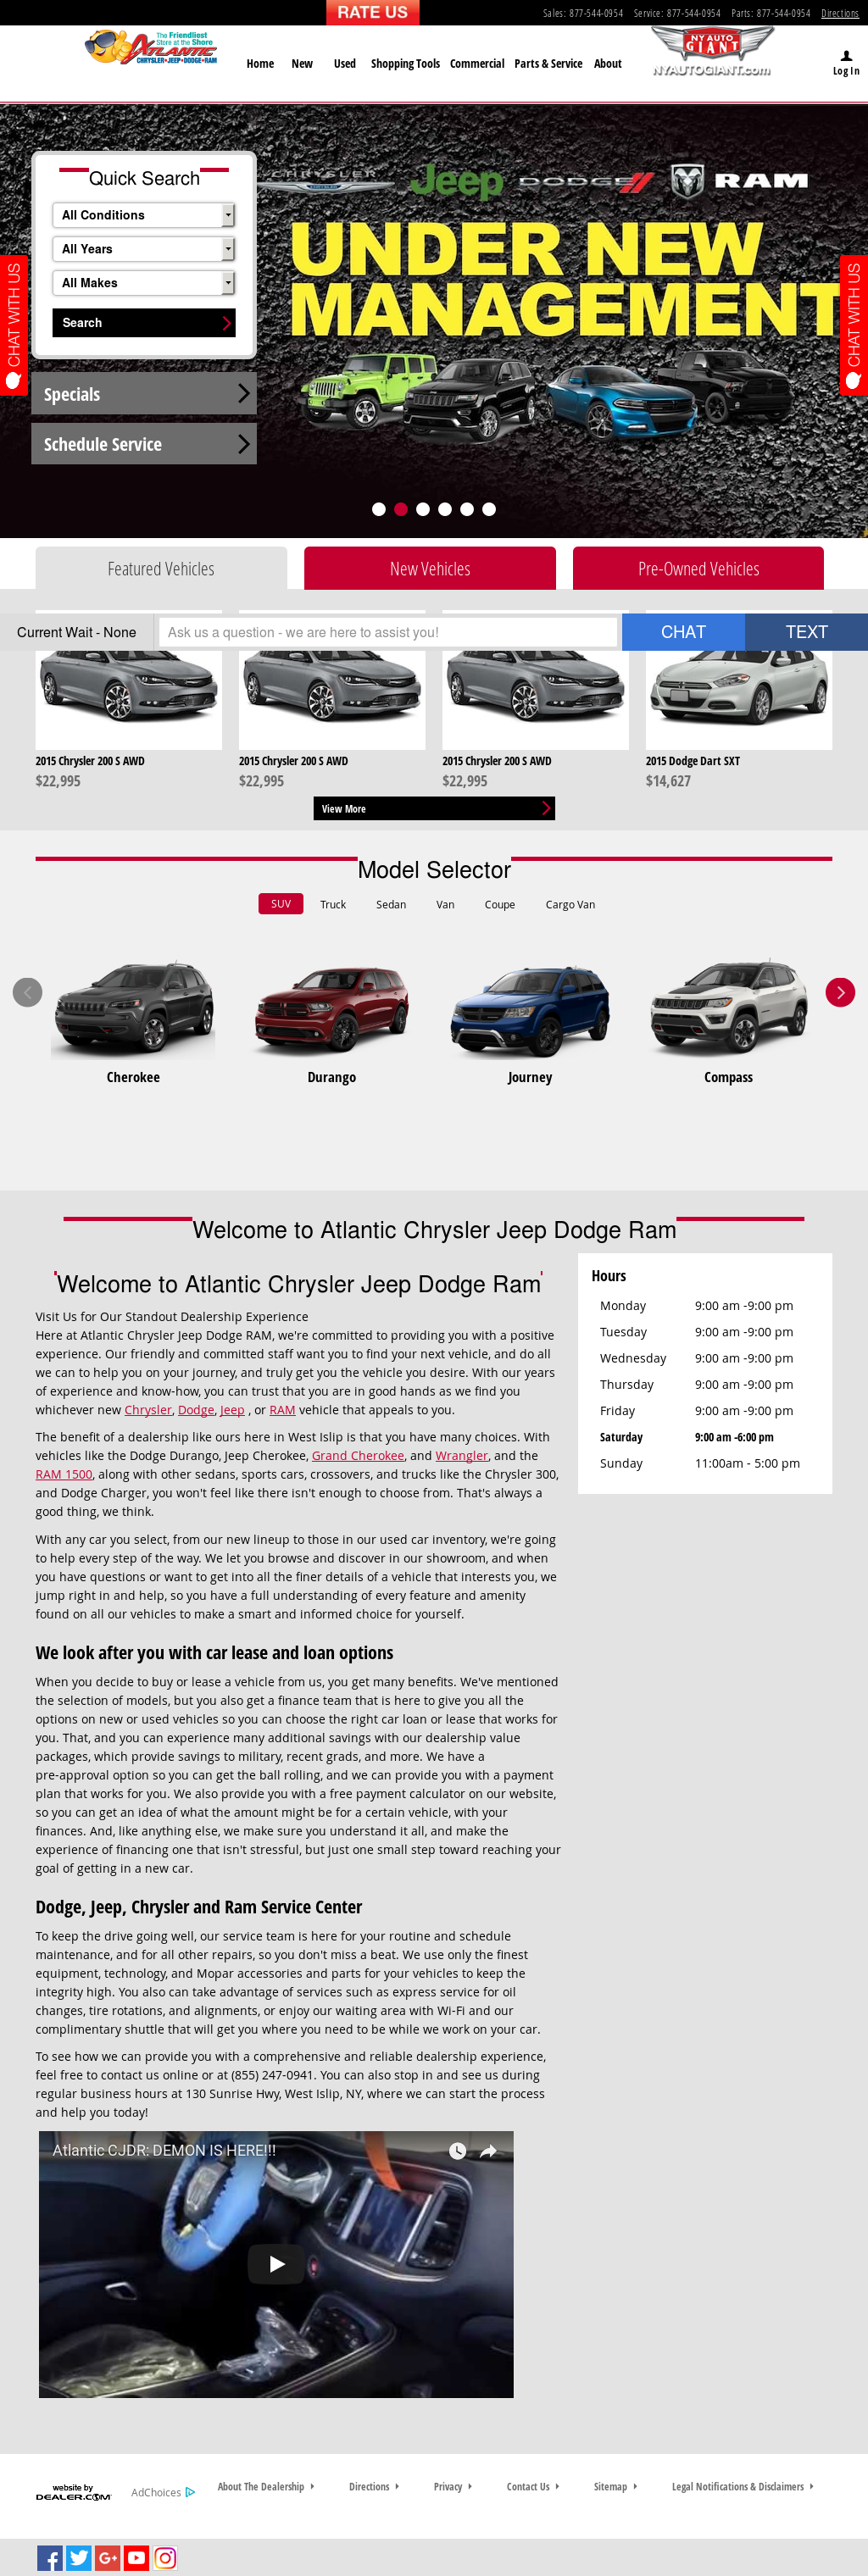 Atlantic Chrysler Jeep Dodge Ram Website History